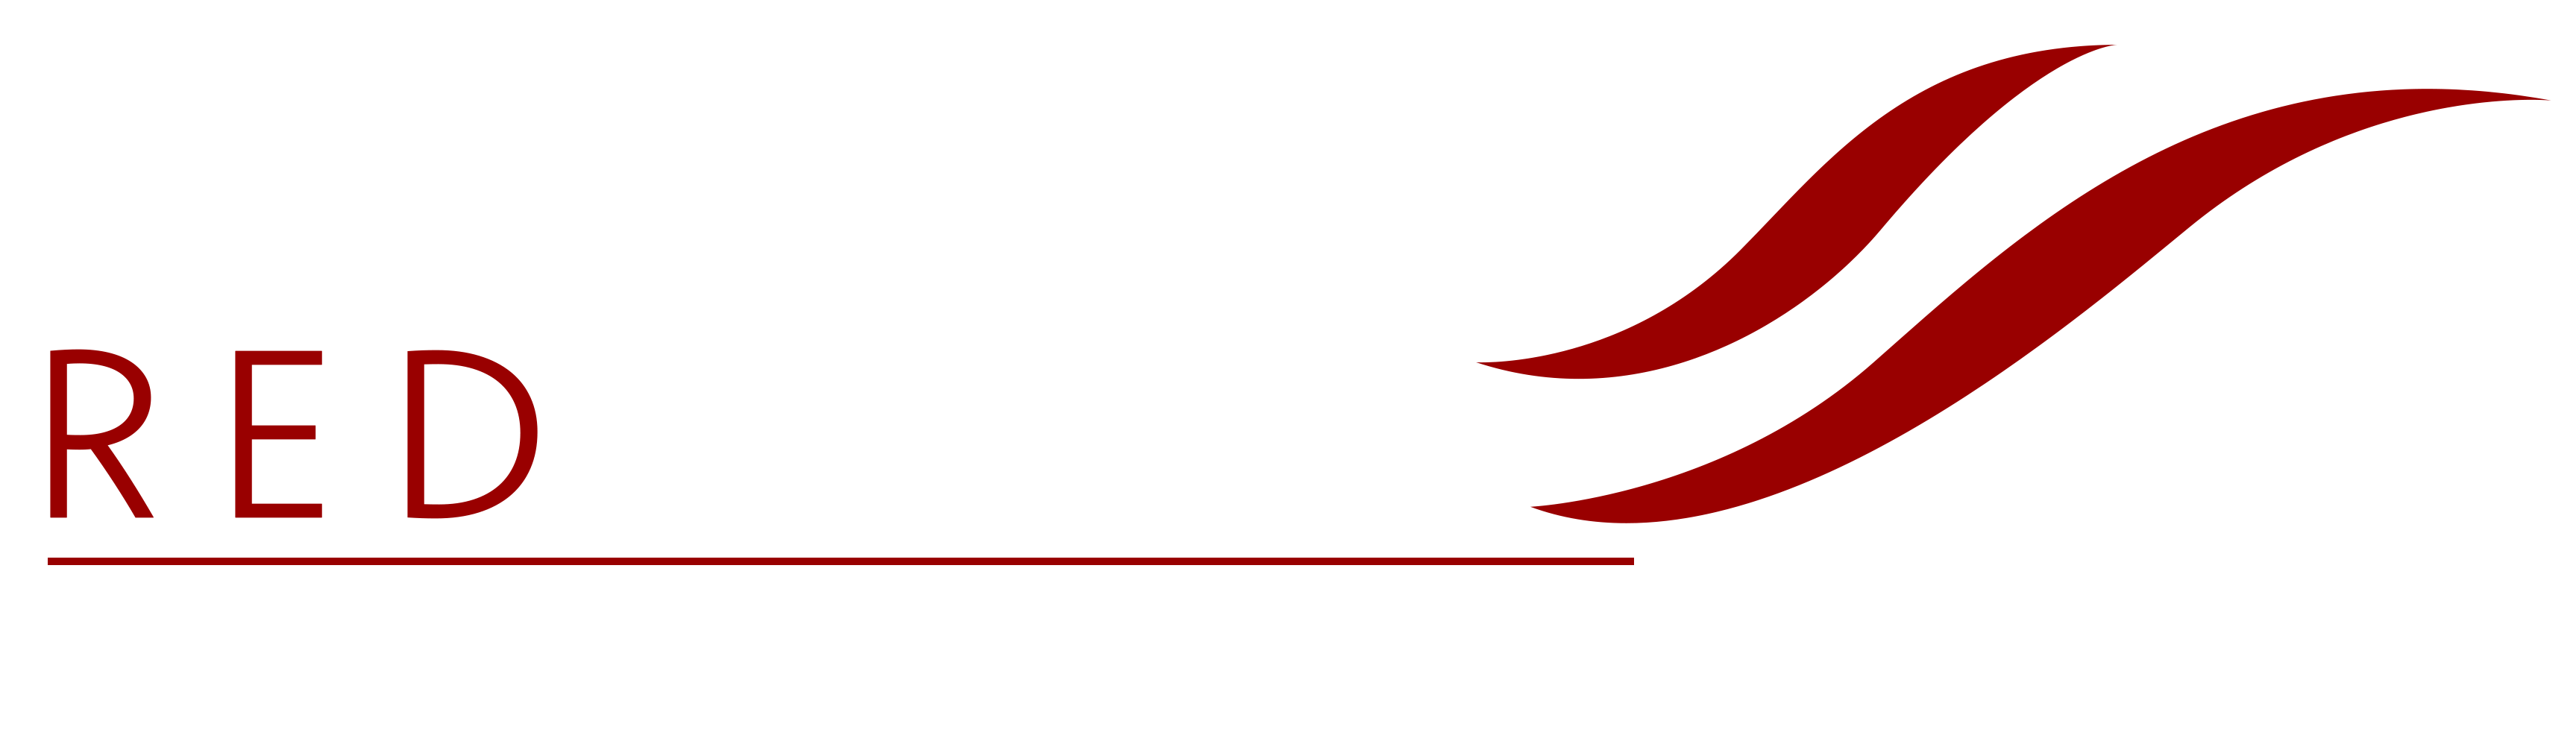 Redwind Consulting Resources